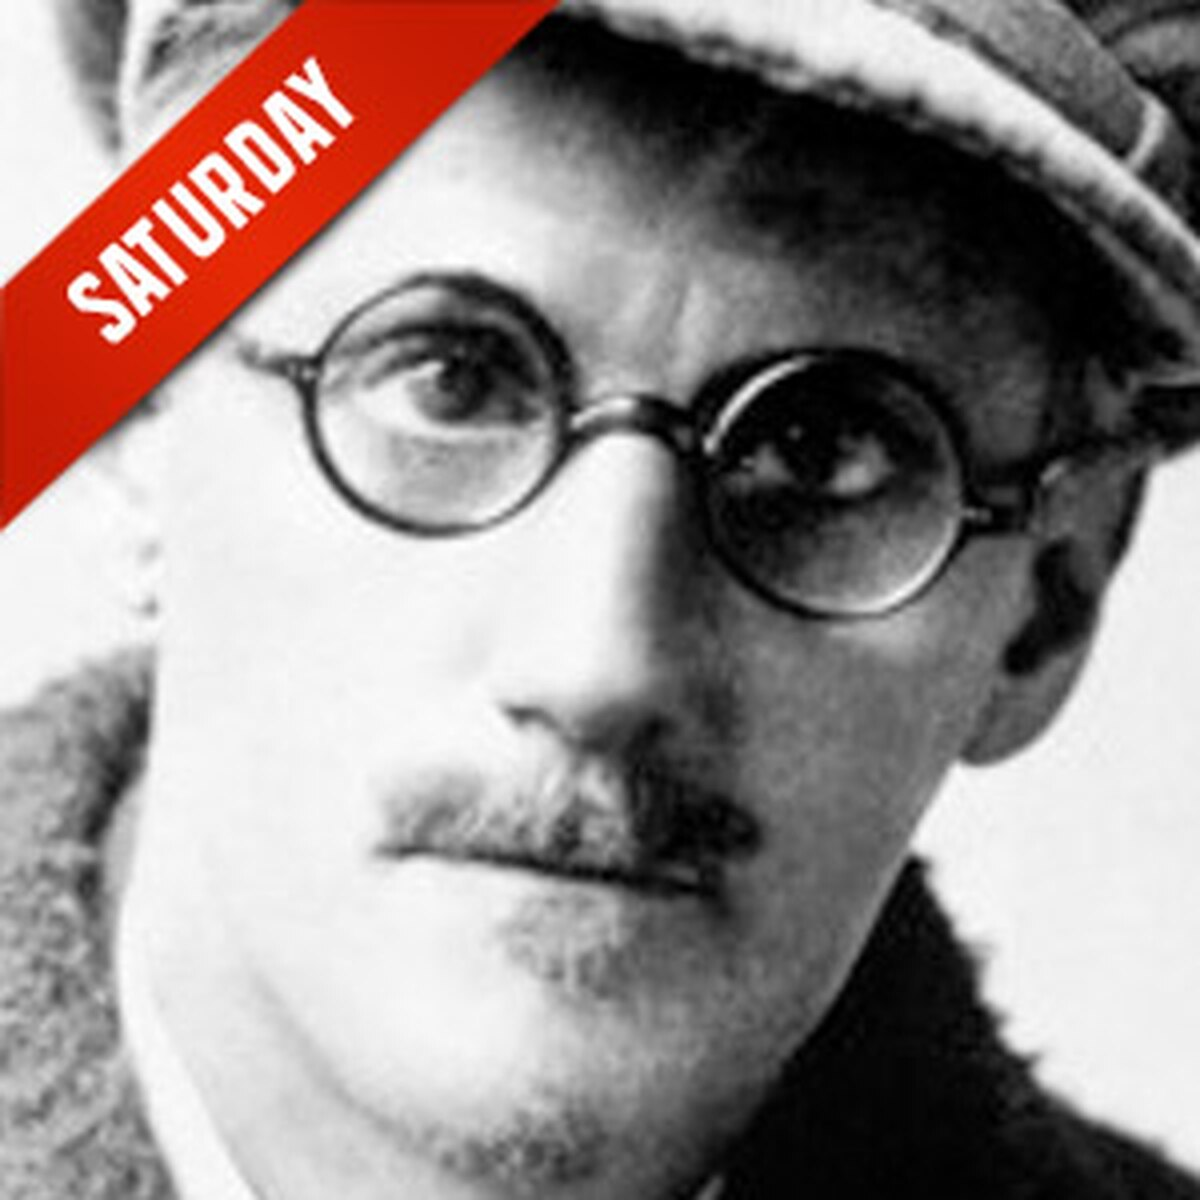 JoyceGroup Santa Fe Join other James Joyce-lovers to read and discuss his master works in the weekly morning group. In Winiarsku seminar room, #201 and led by Adam Harvey, local Joyce-enthusiast. More Info>>